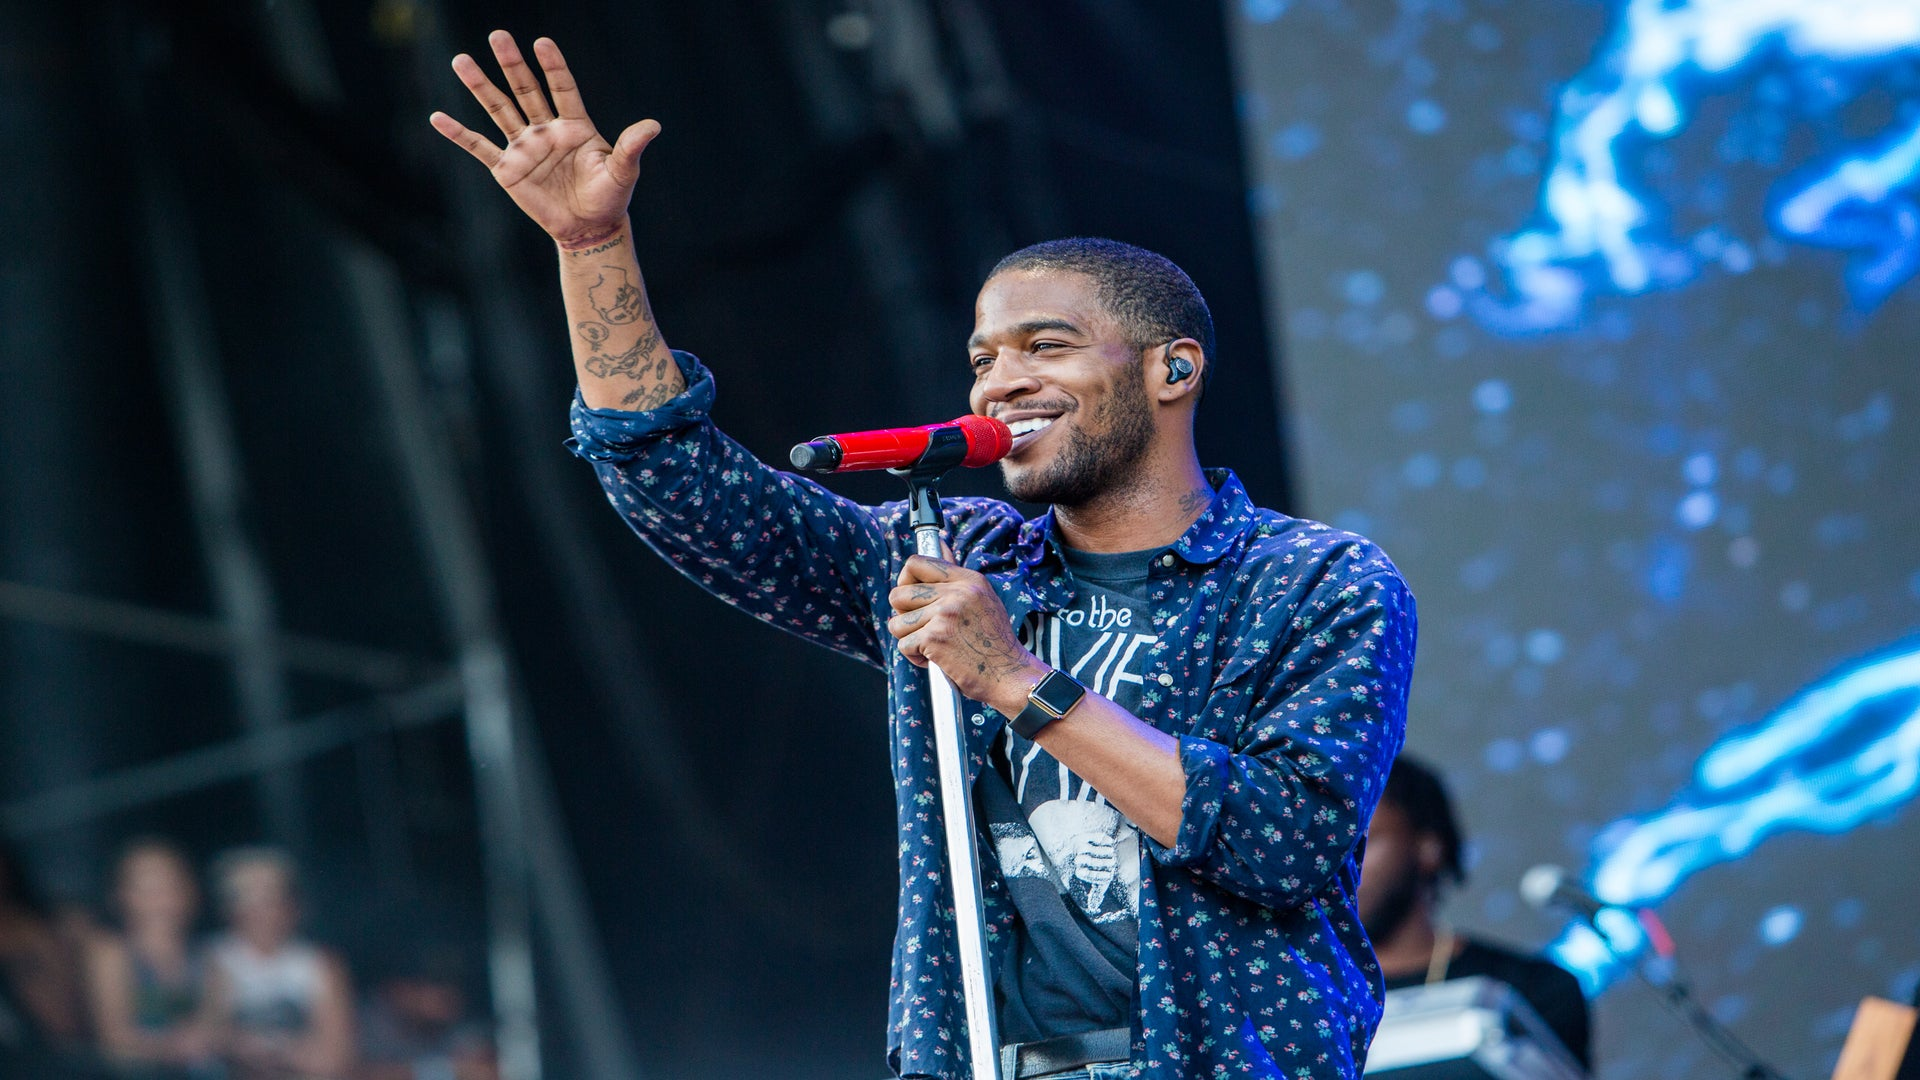 Here For It: Kid Cudi's Mental Health Struggle Has Inspired Black Men To Talk About Depression